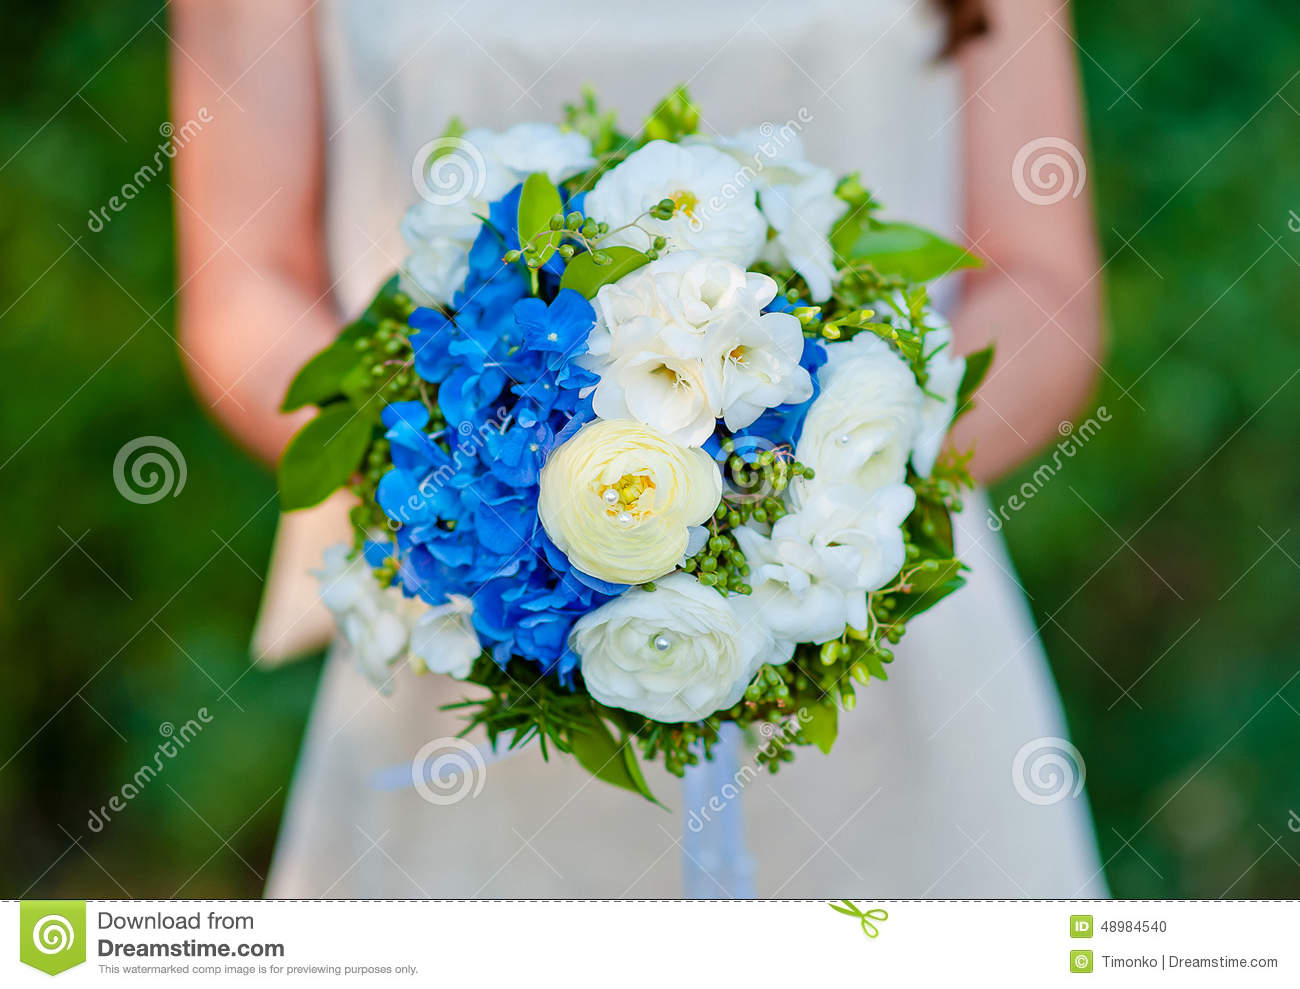 Bridal Bouquet Blue With White Flowers In The Bride\'s Hands Stock ...